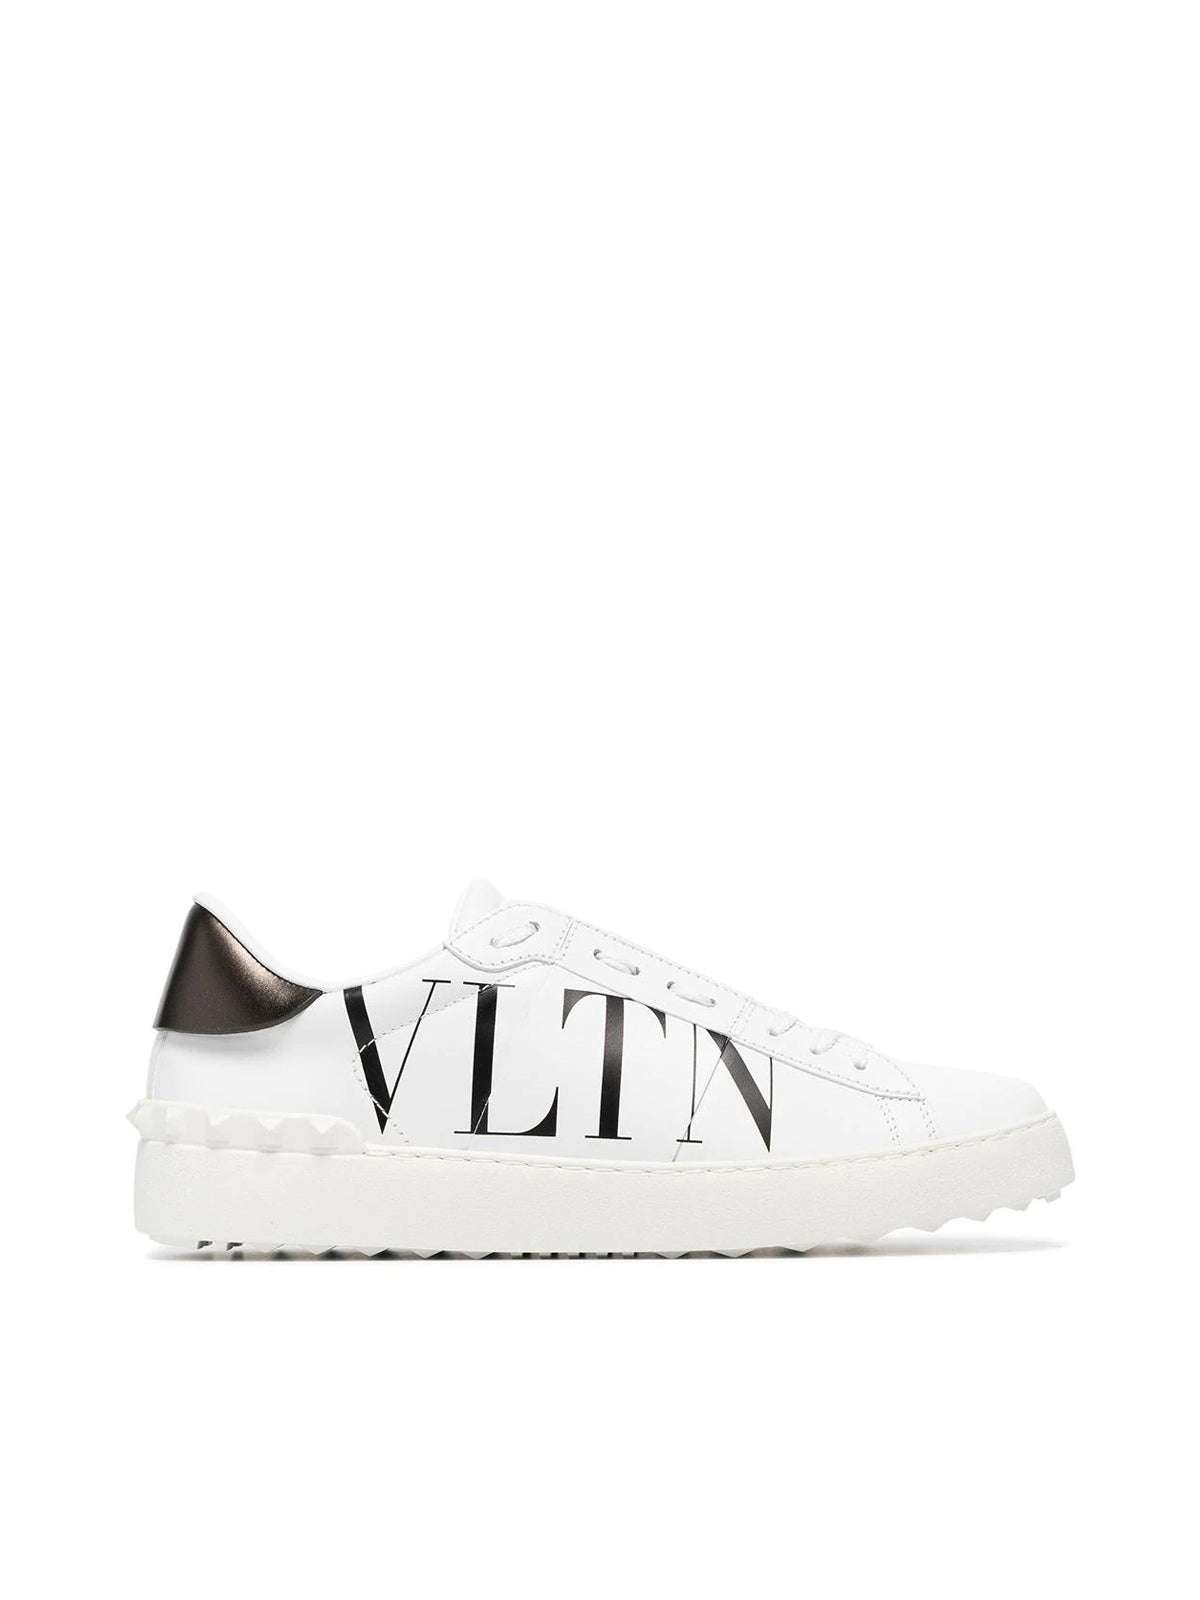 VLTN low-top sneakers